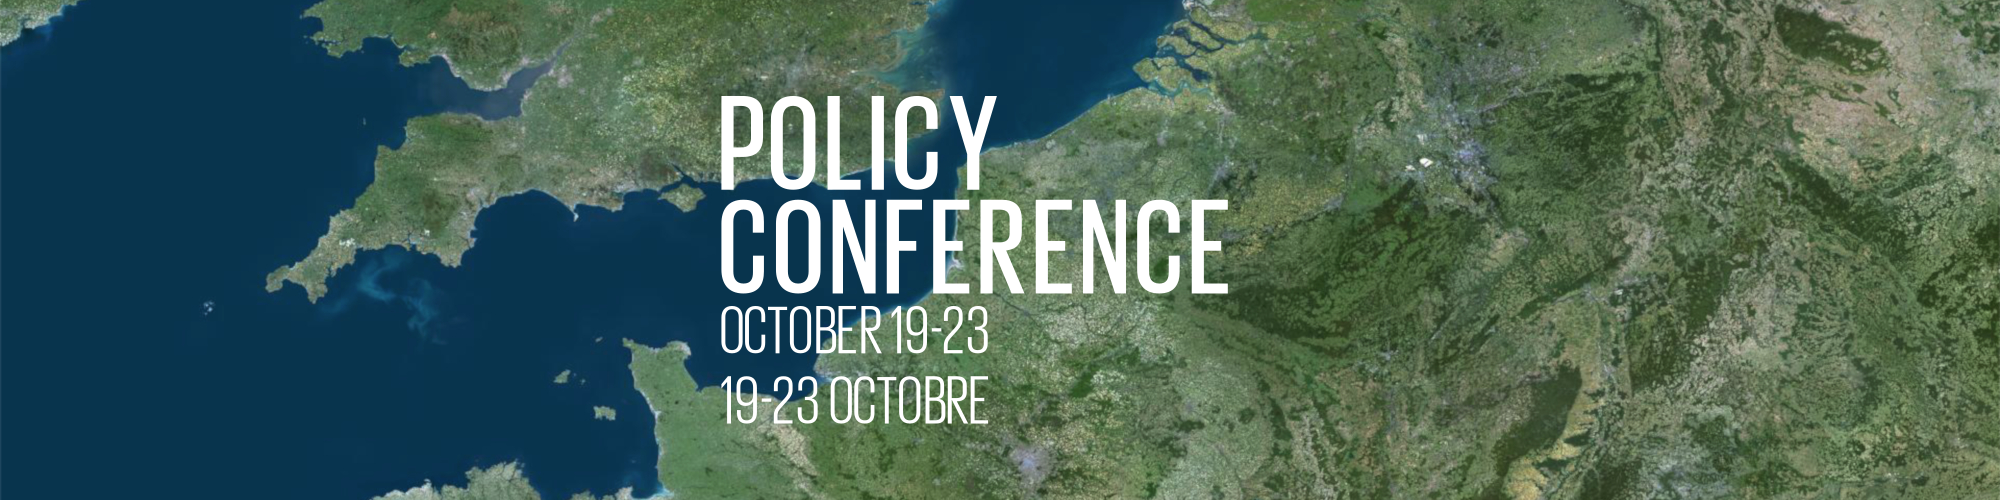 POLICY CONFERENCE